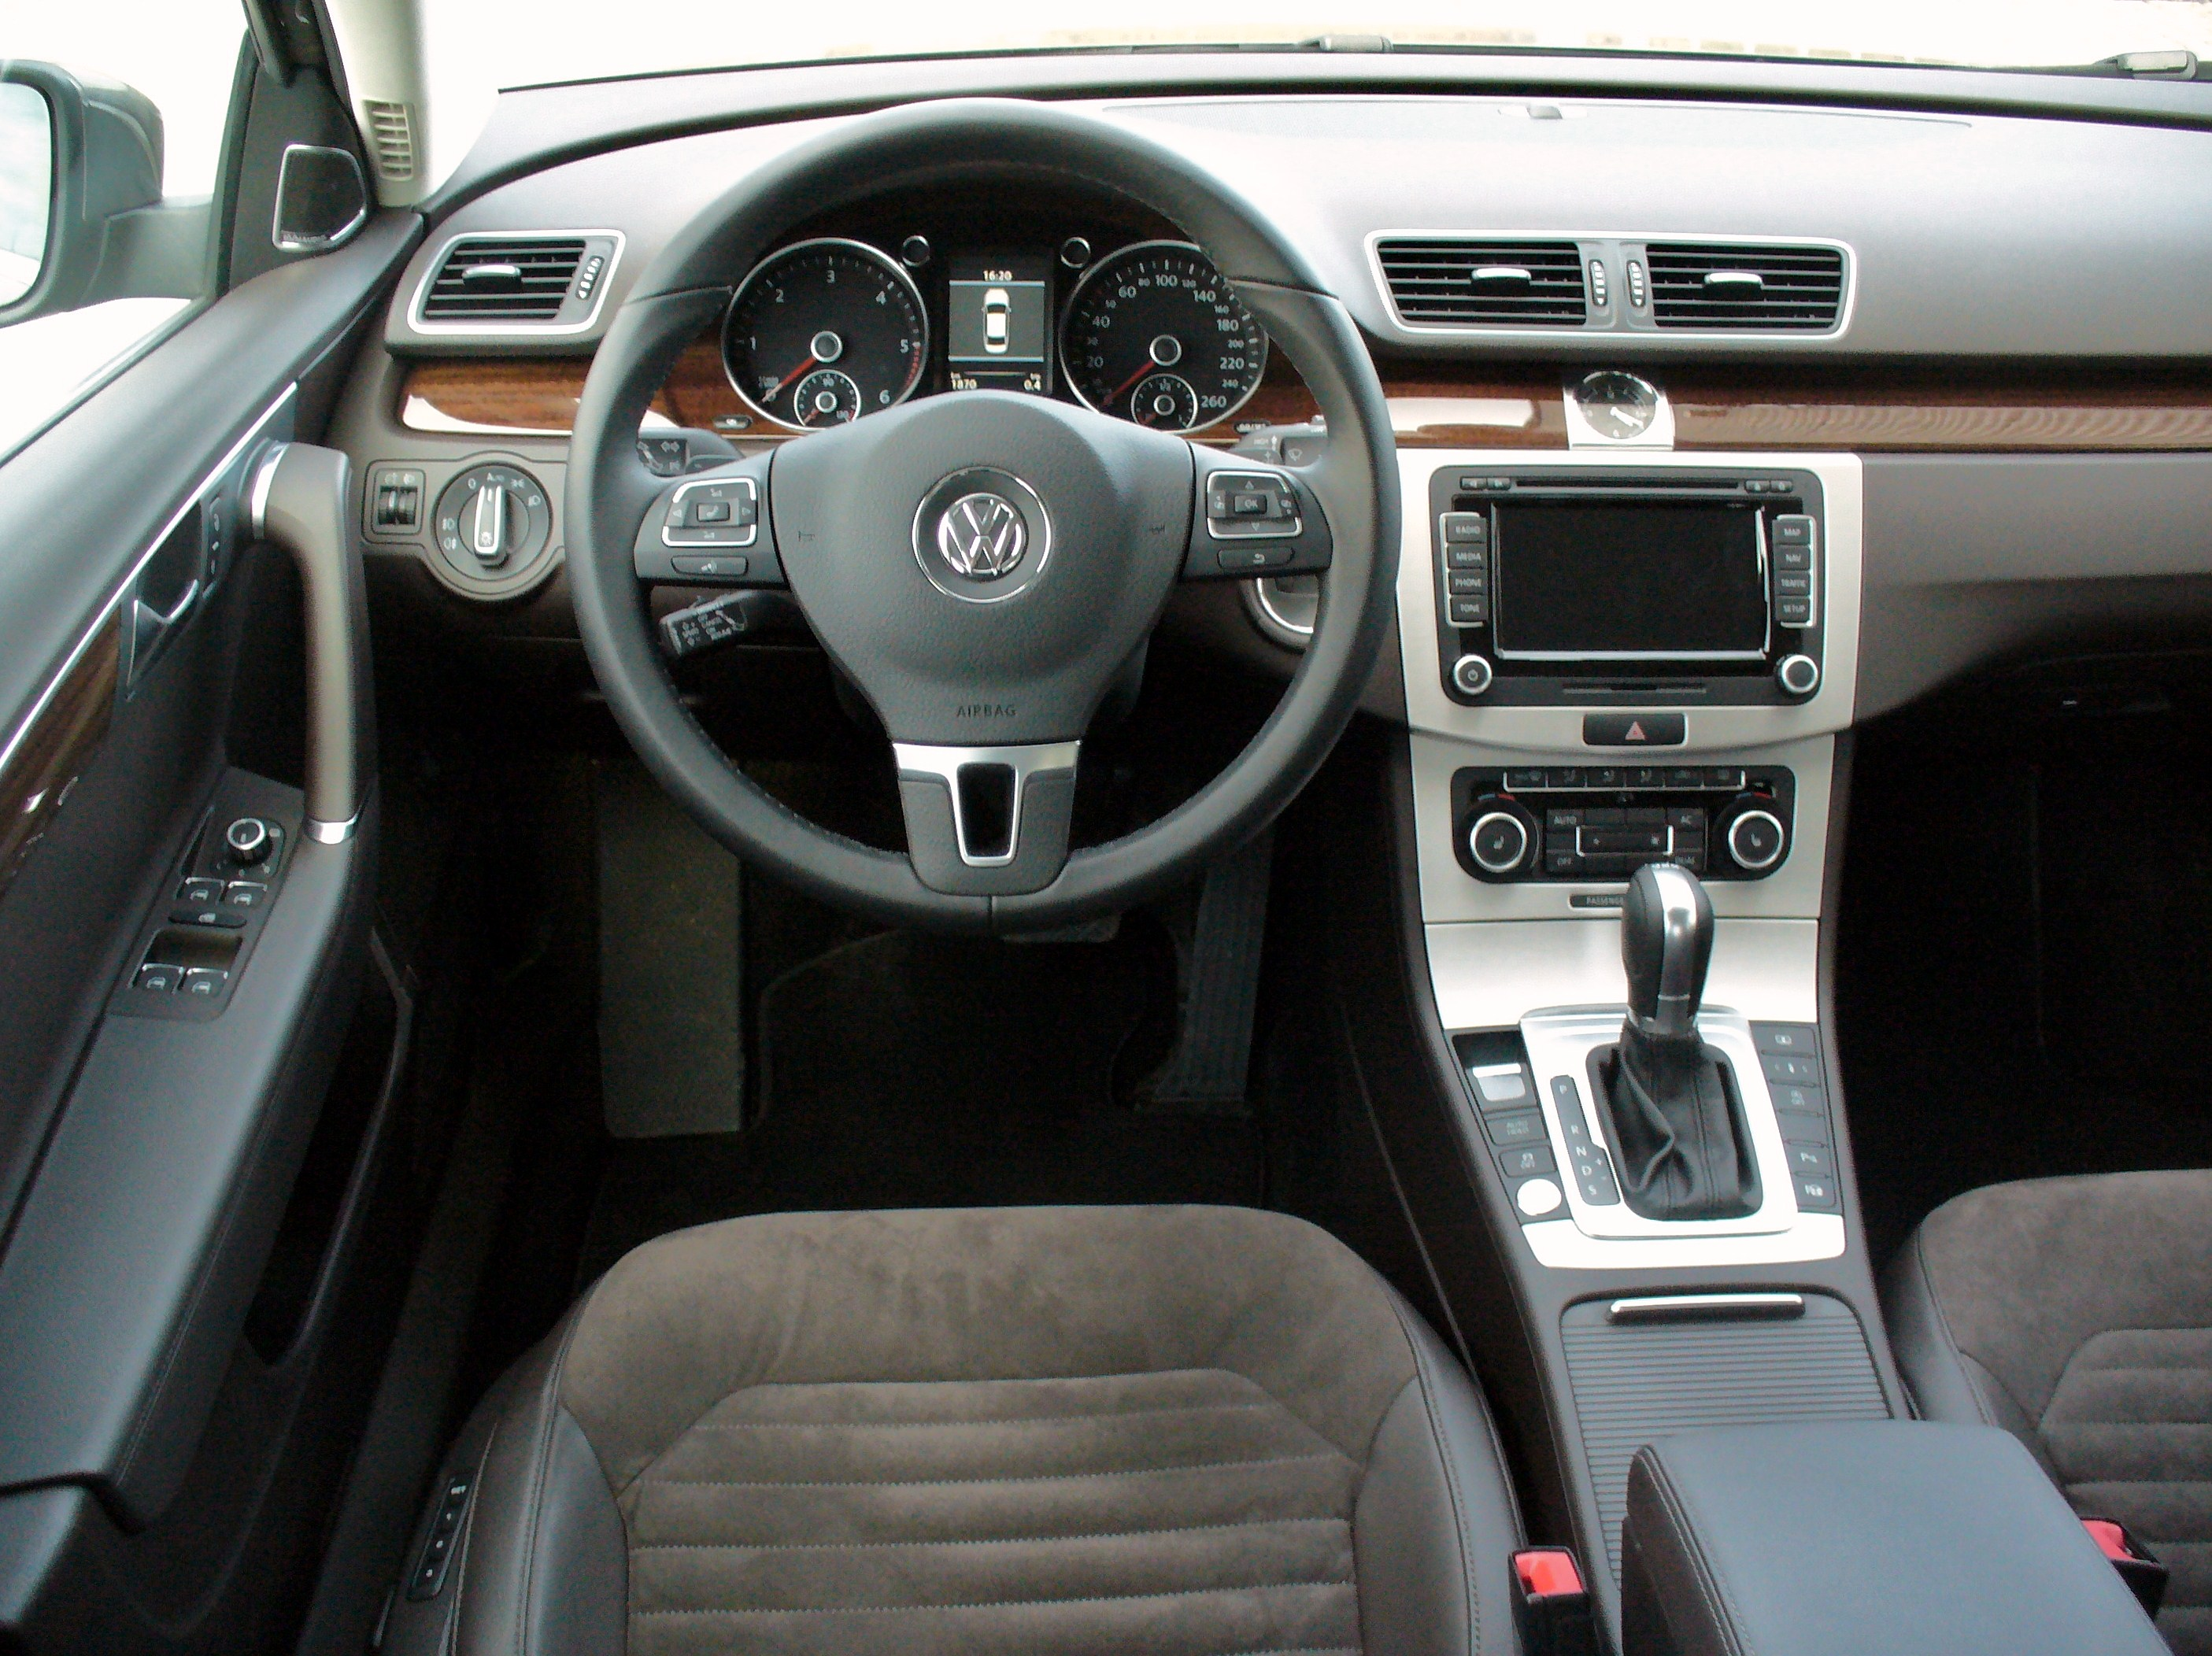 file vw passat b7 2 0 tdi dsg highline kaschmirbraun interieur jpg wikimedia commons. Black Bedroom Furniture Sets. Home Design Ideas